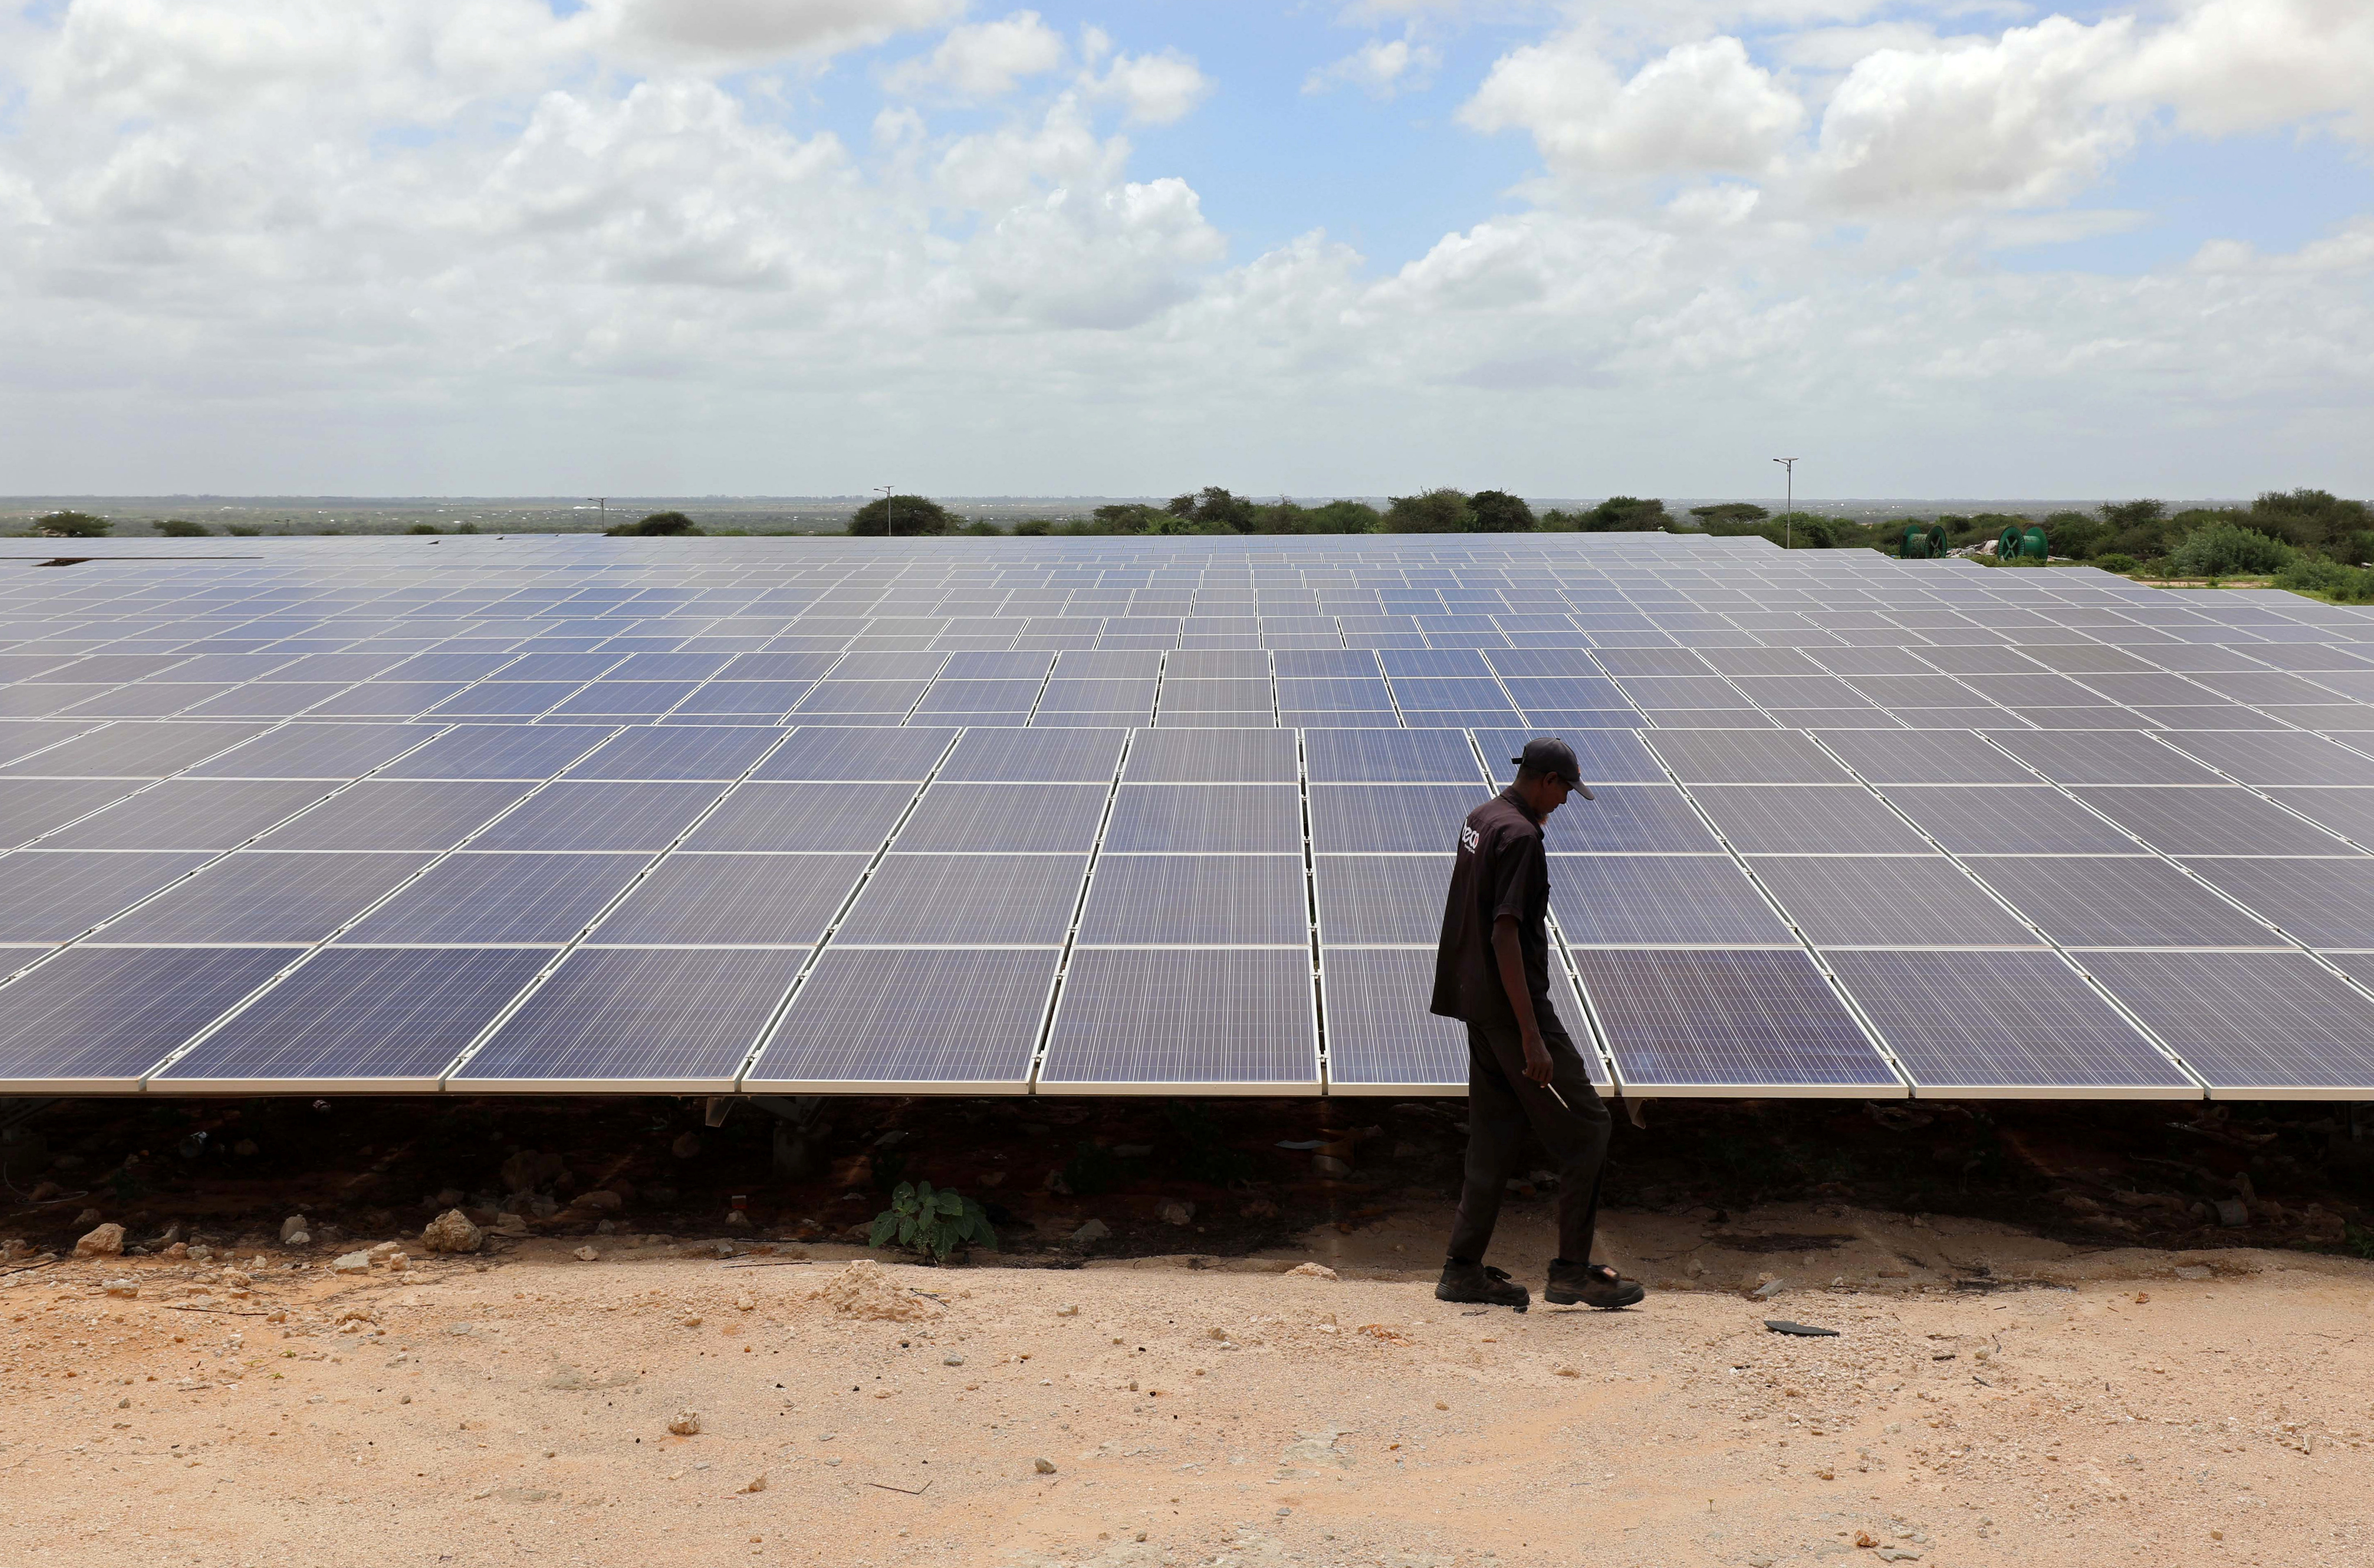 A engineer walks past the solar panels at the Benadir Electricity Company (BECO) solar project in Mogadishu, Somalia May 21, 2020. Picture taken May 21, 2020. REUTERS/Feisal Omar